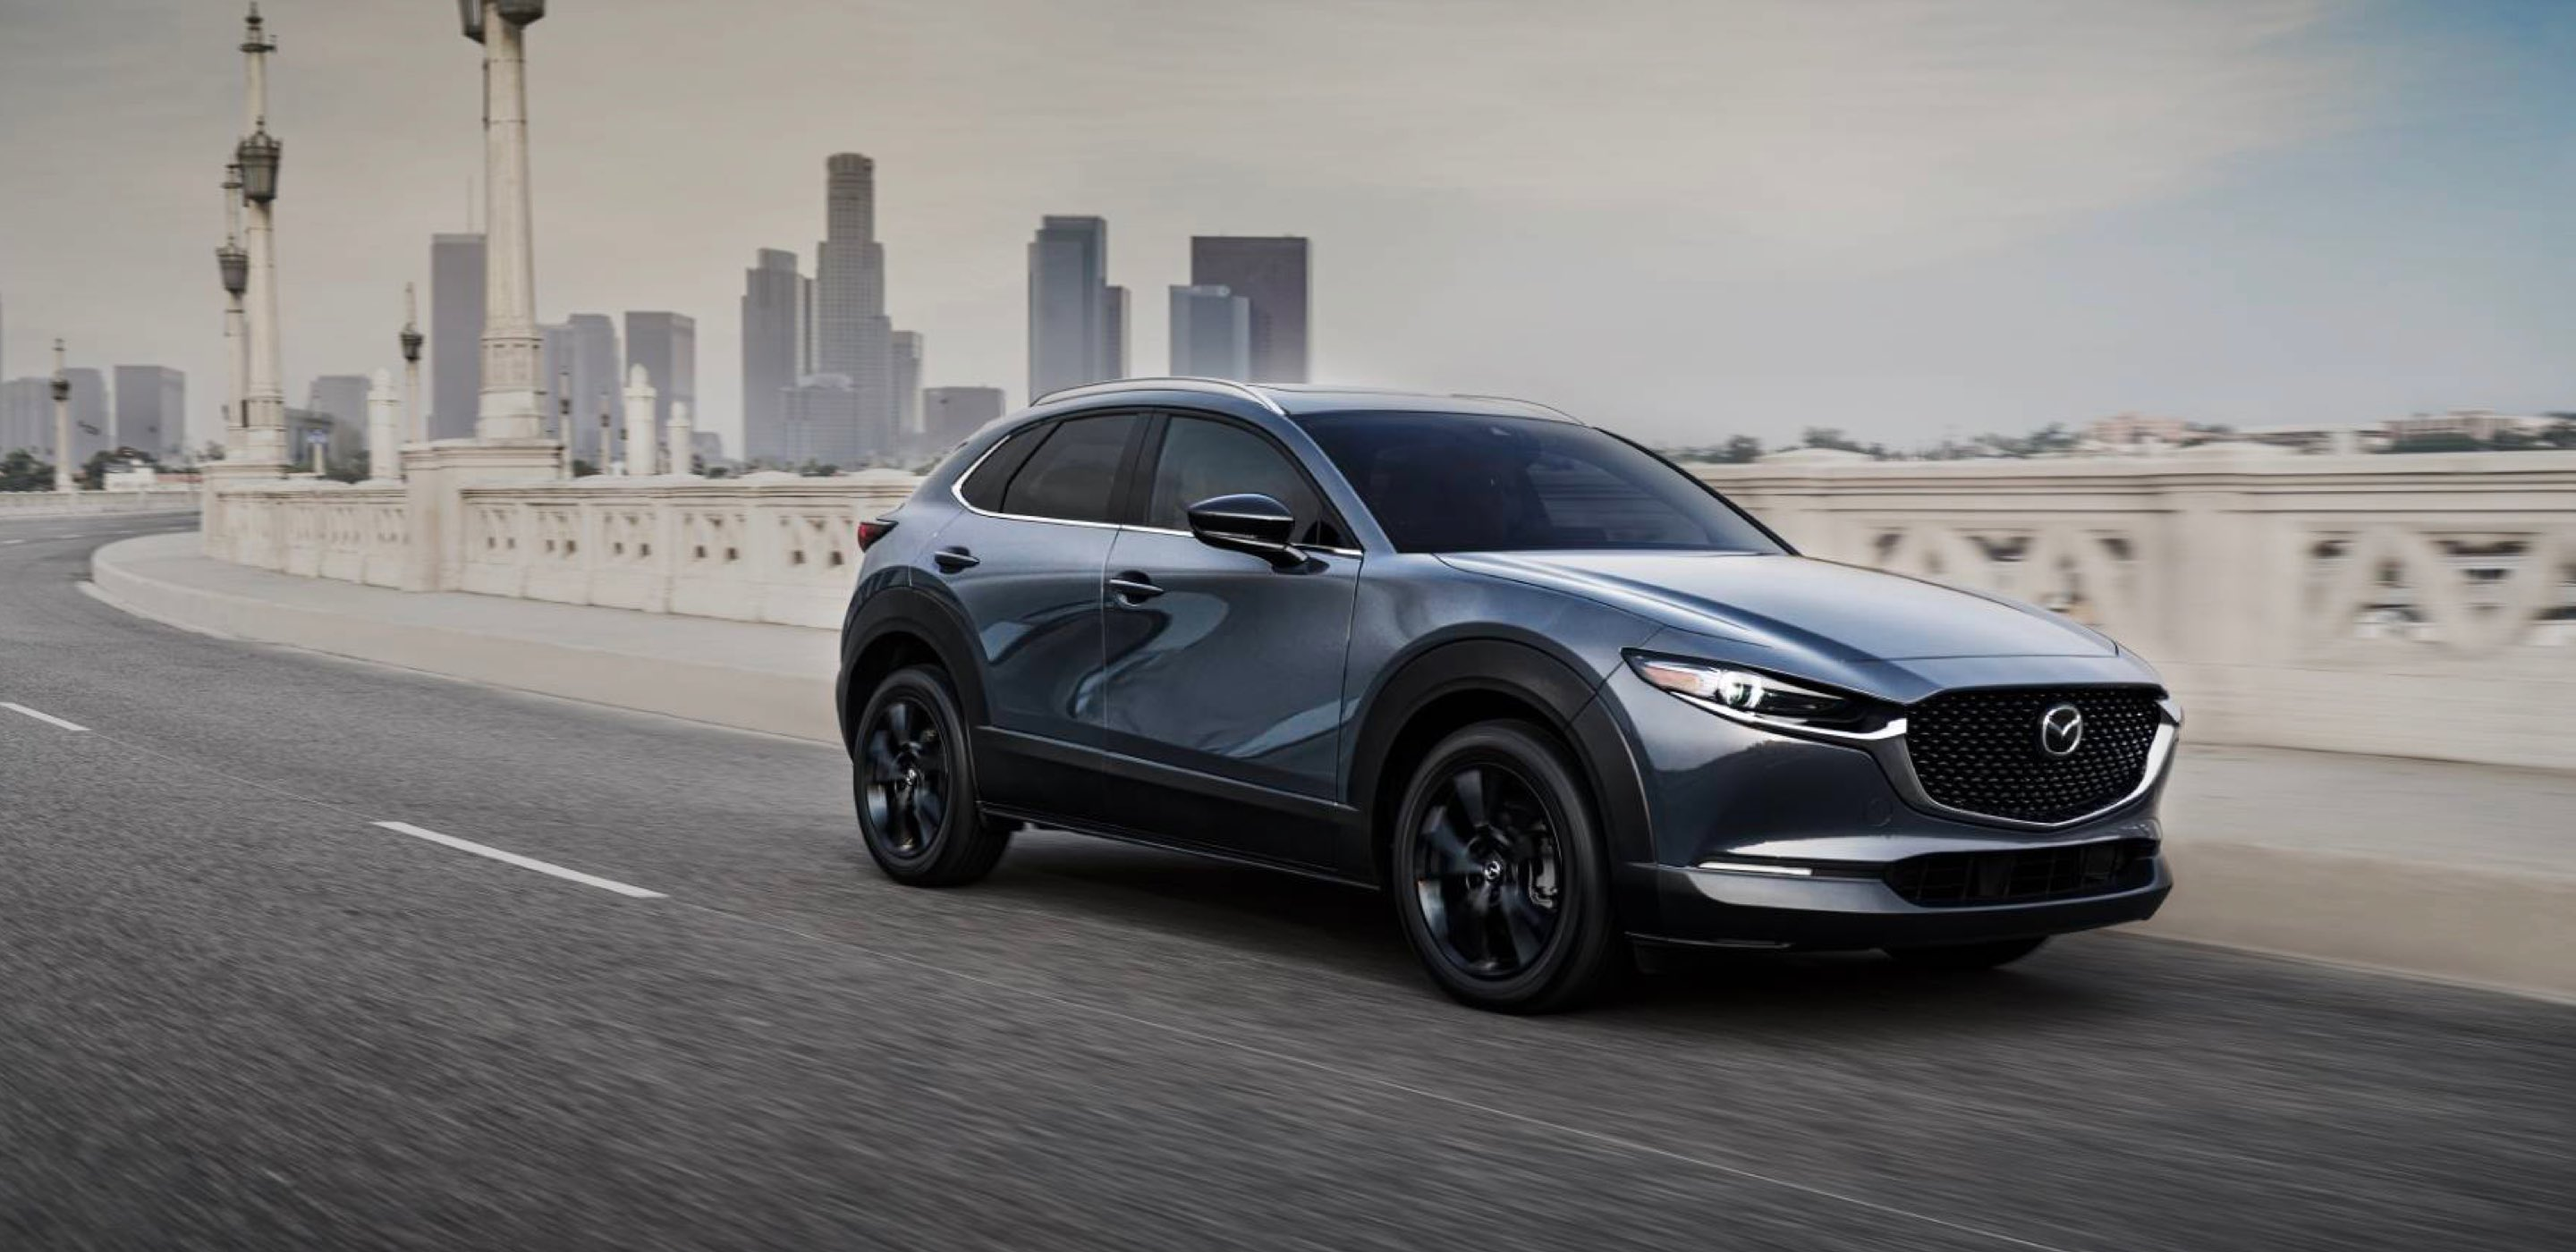 2021 Mazda CX-30, PRIORITIES HAVE CHANGED.<br>CHASE YOURS.